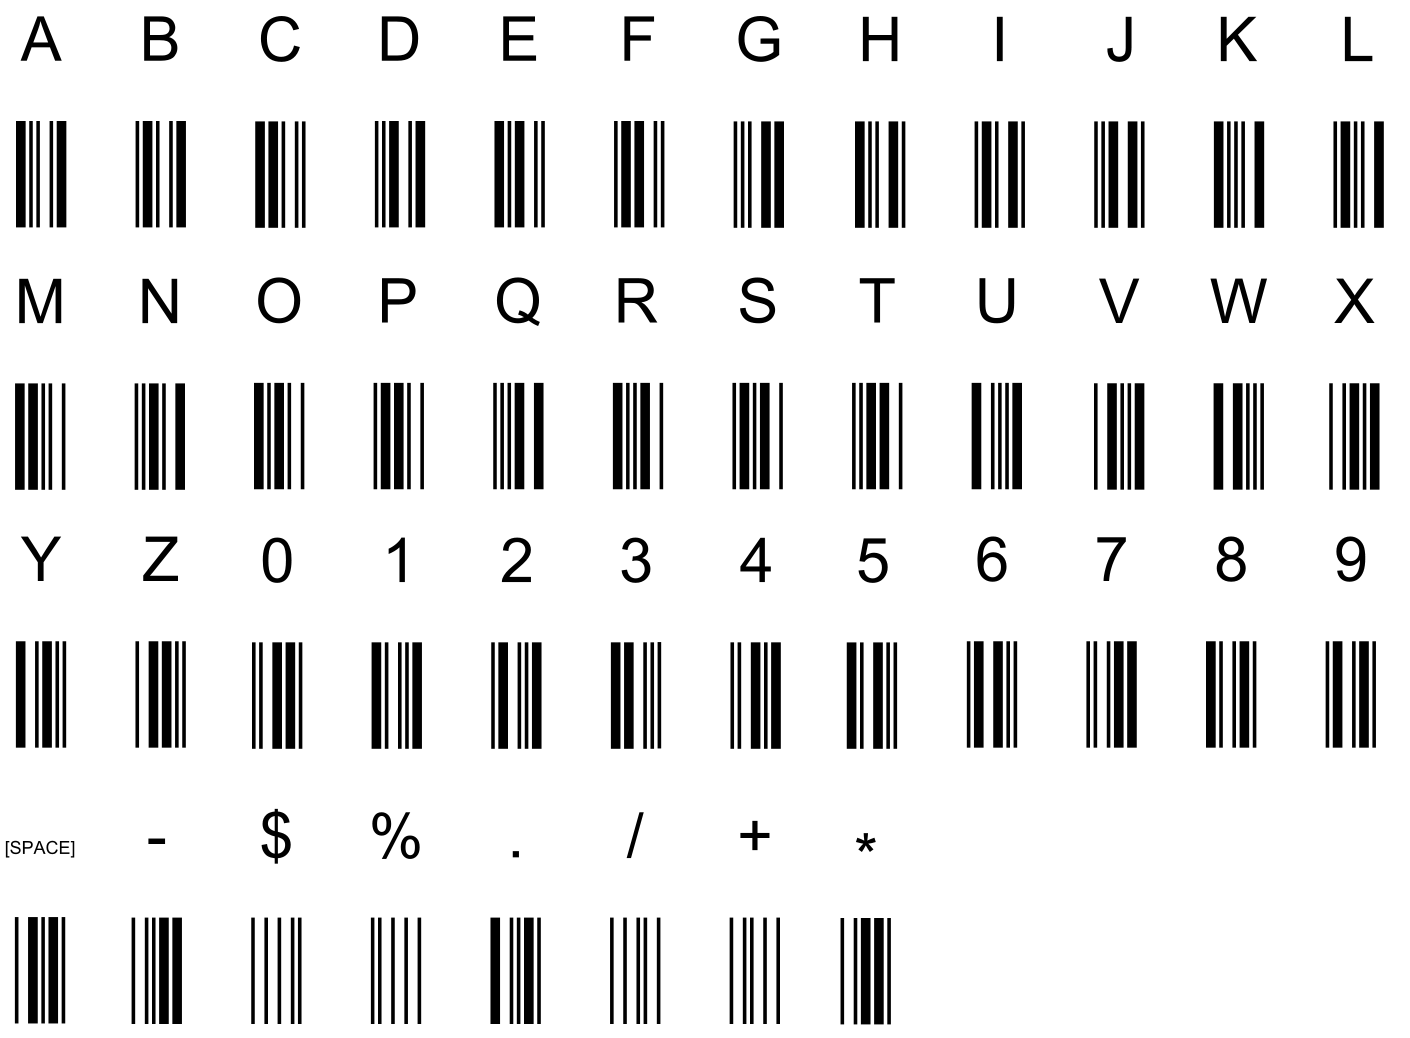 An example of a character encoding